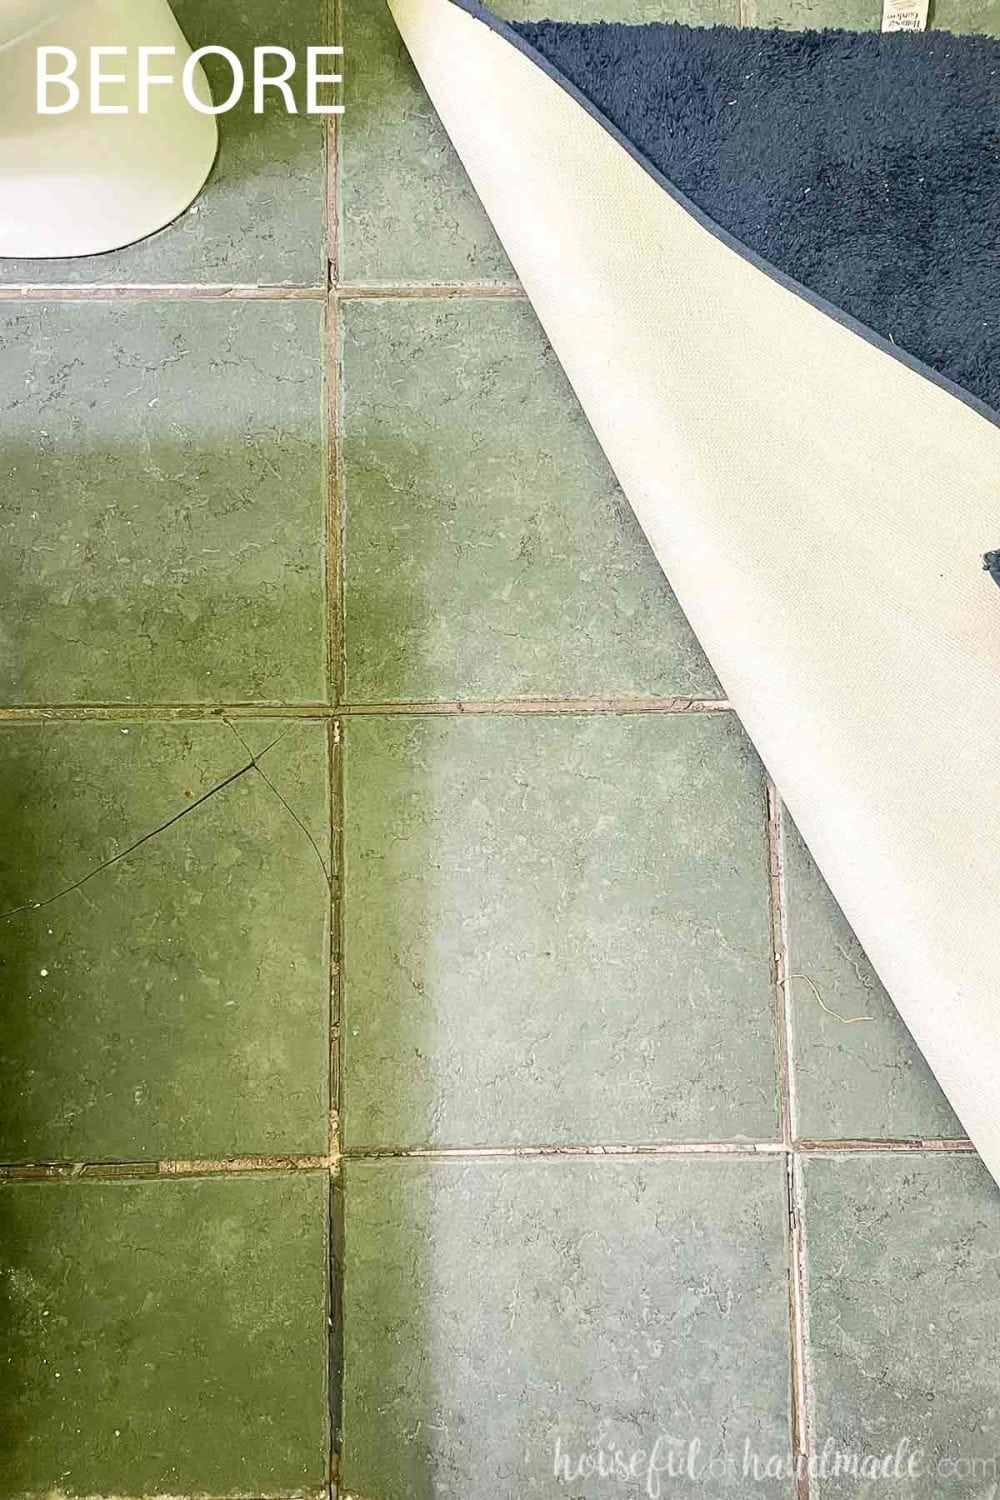 Picture of the broken tile flooring in the bathroom that needs to be updated.